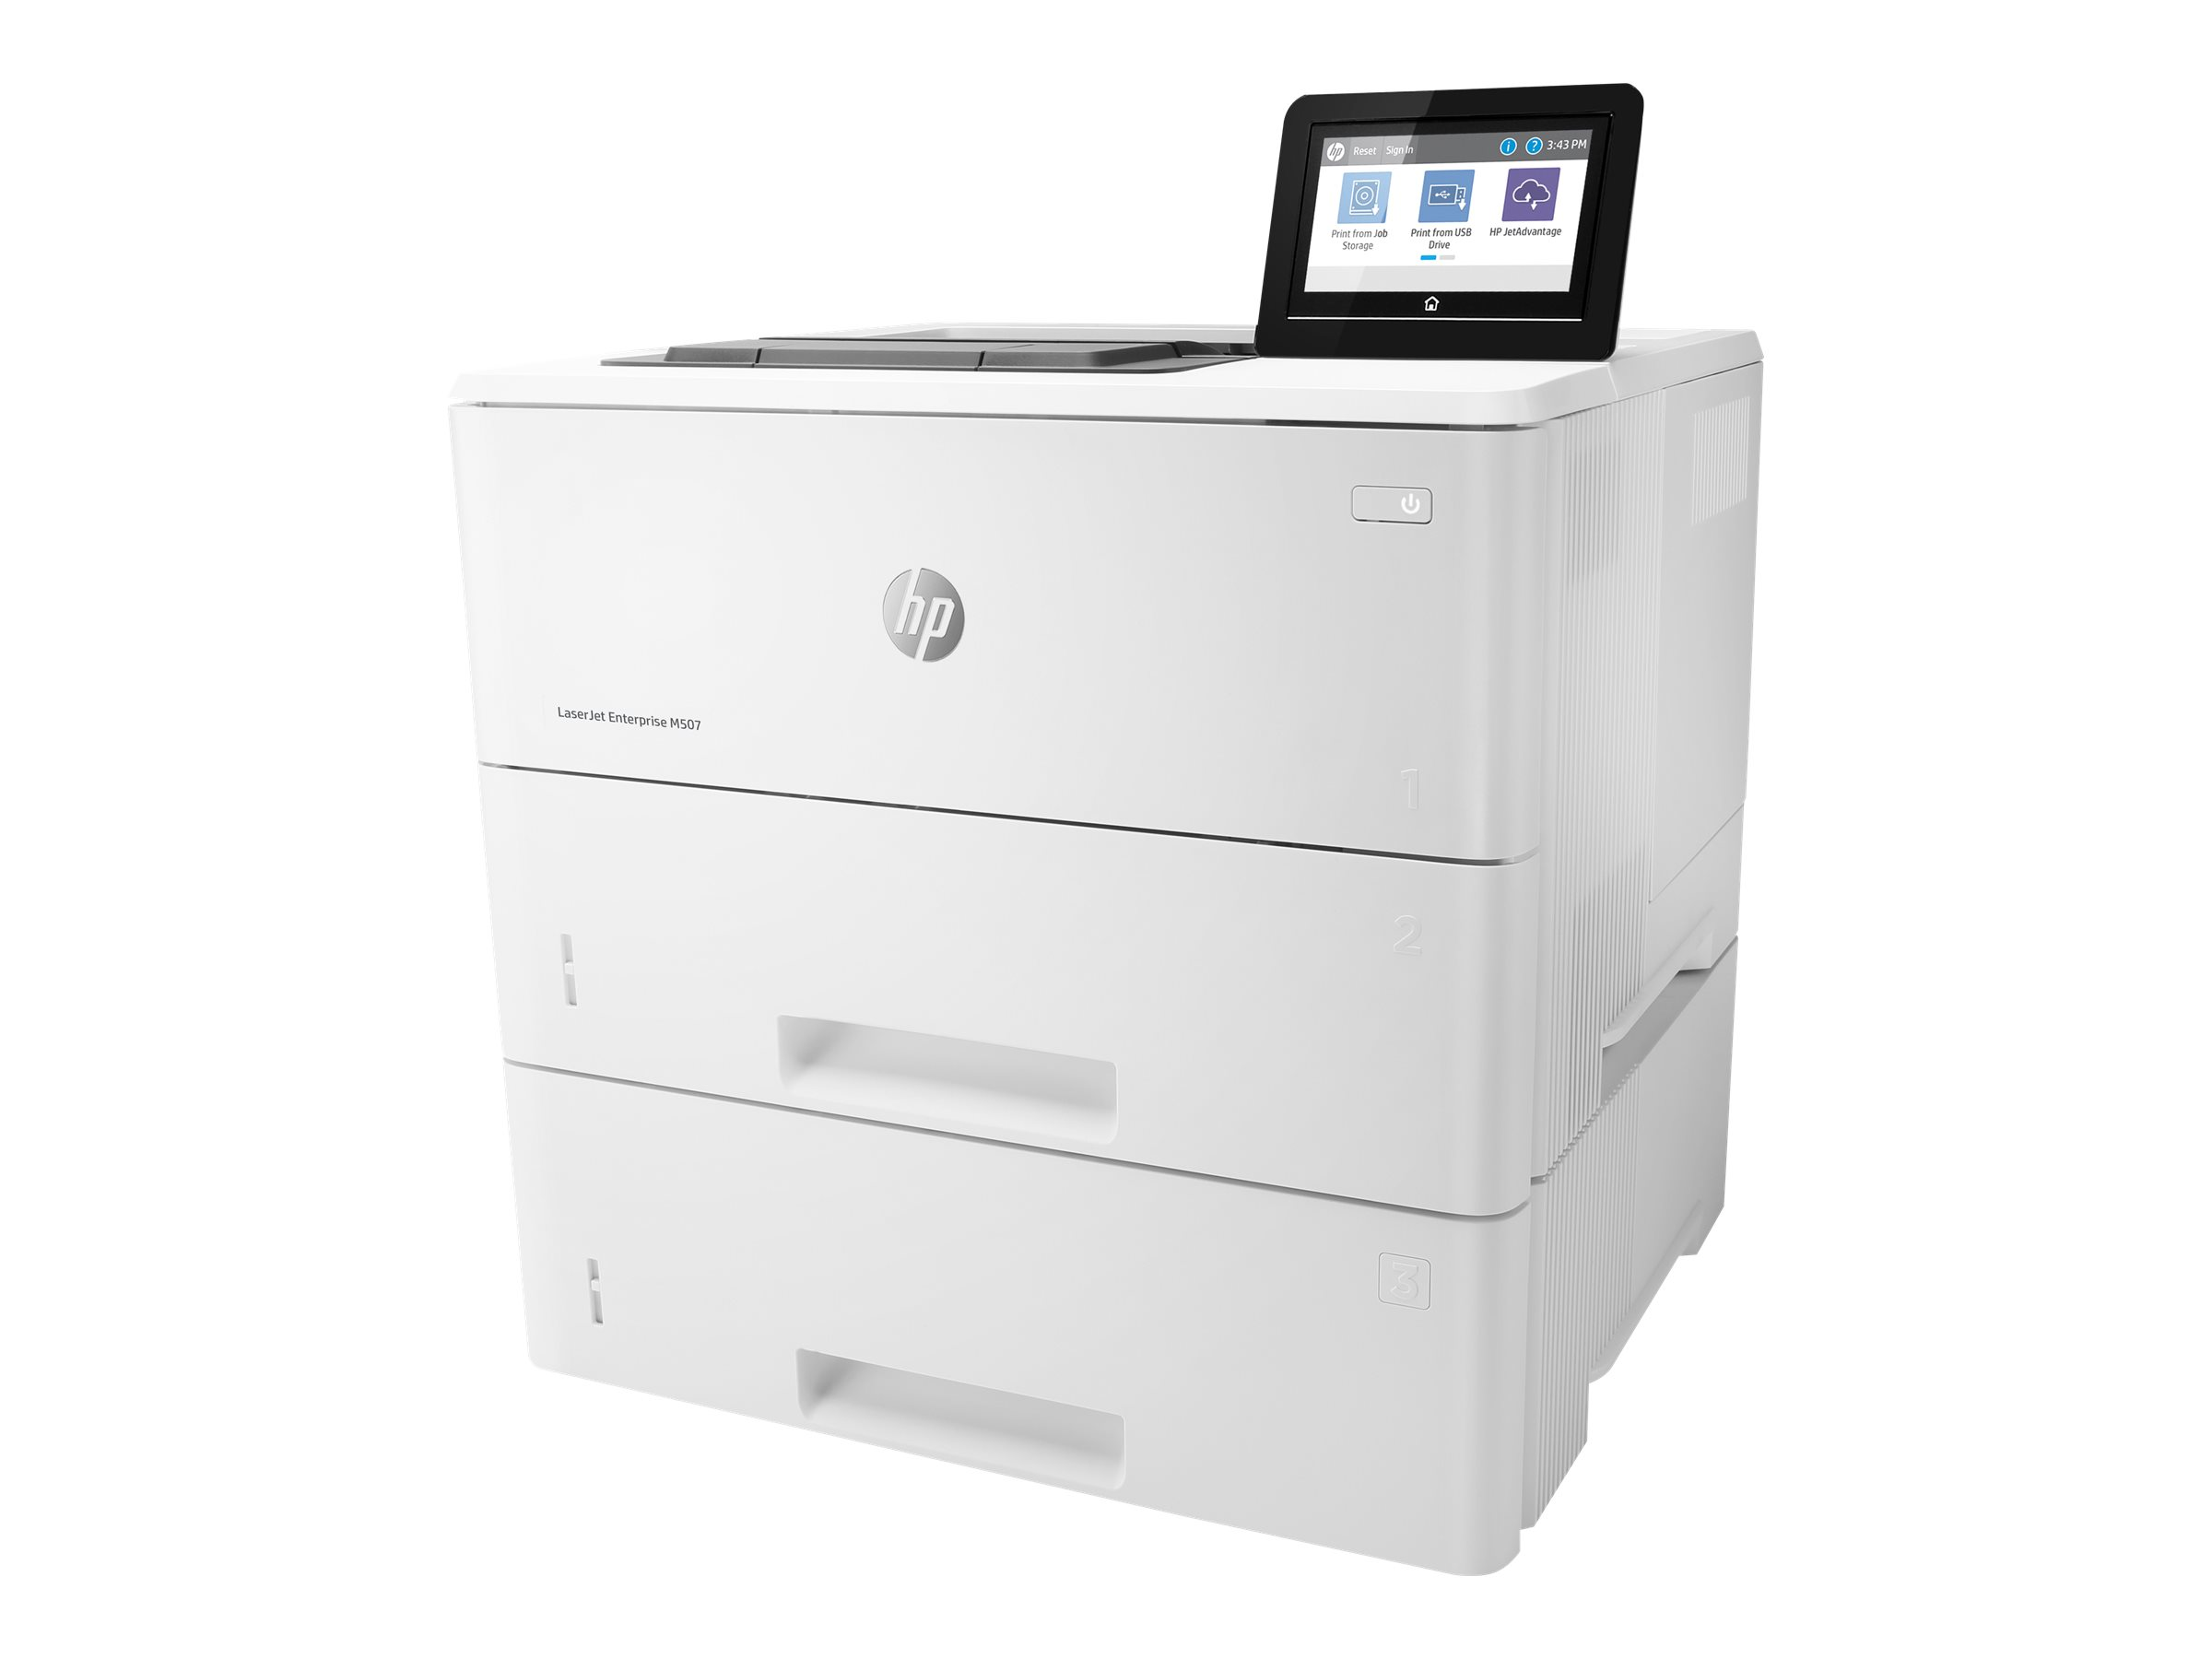 HP LaserJet Enterprise M507x - printer - monochrome - laser